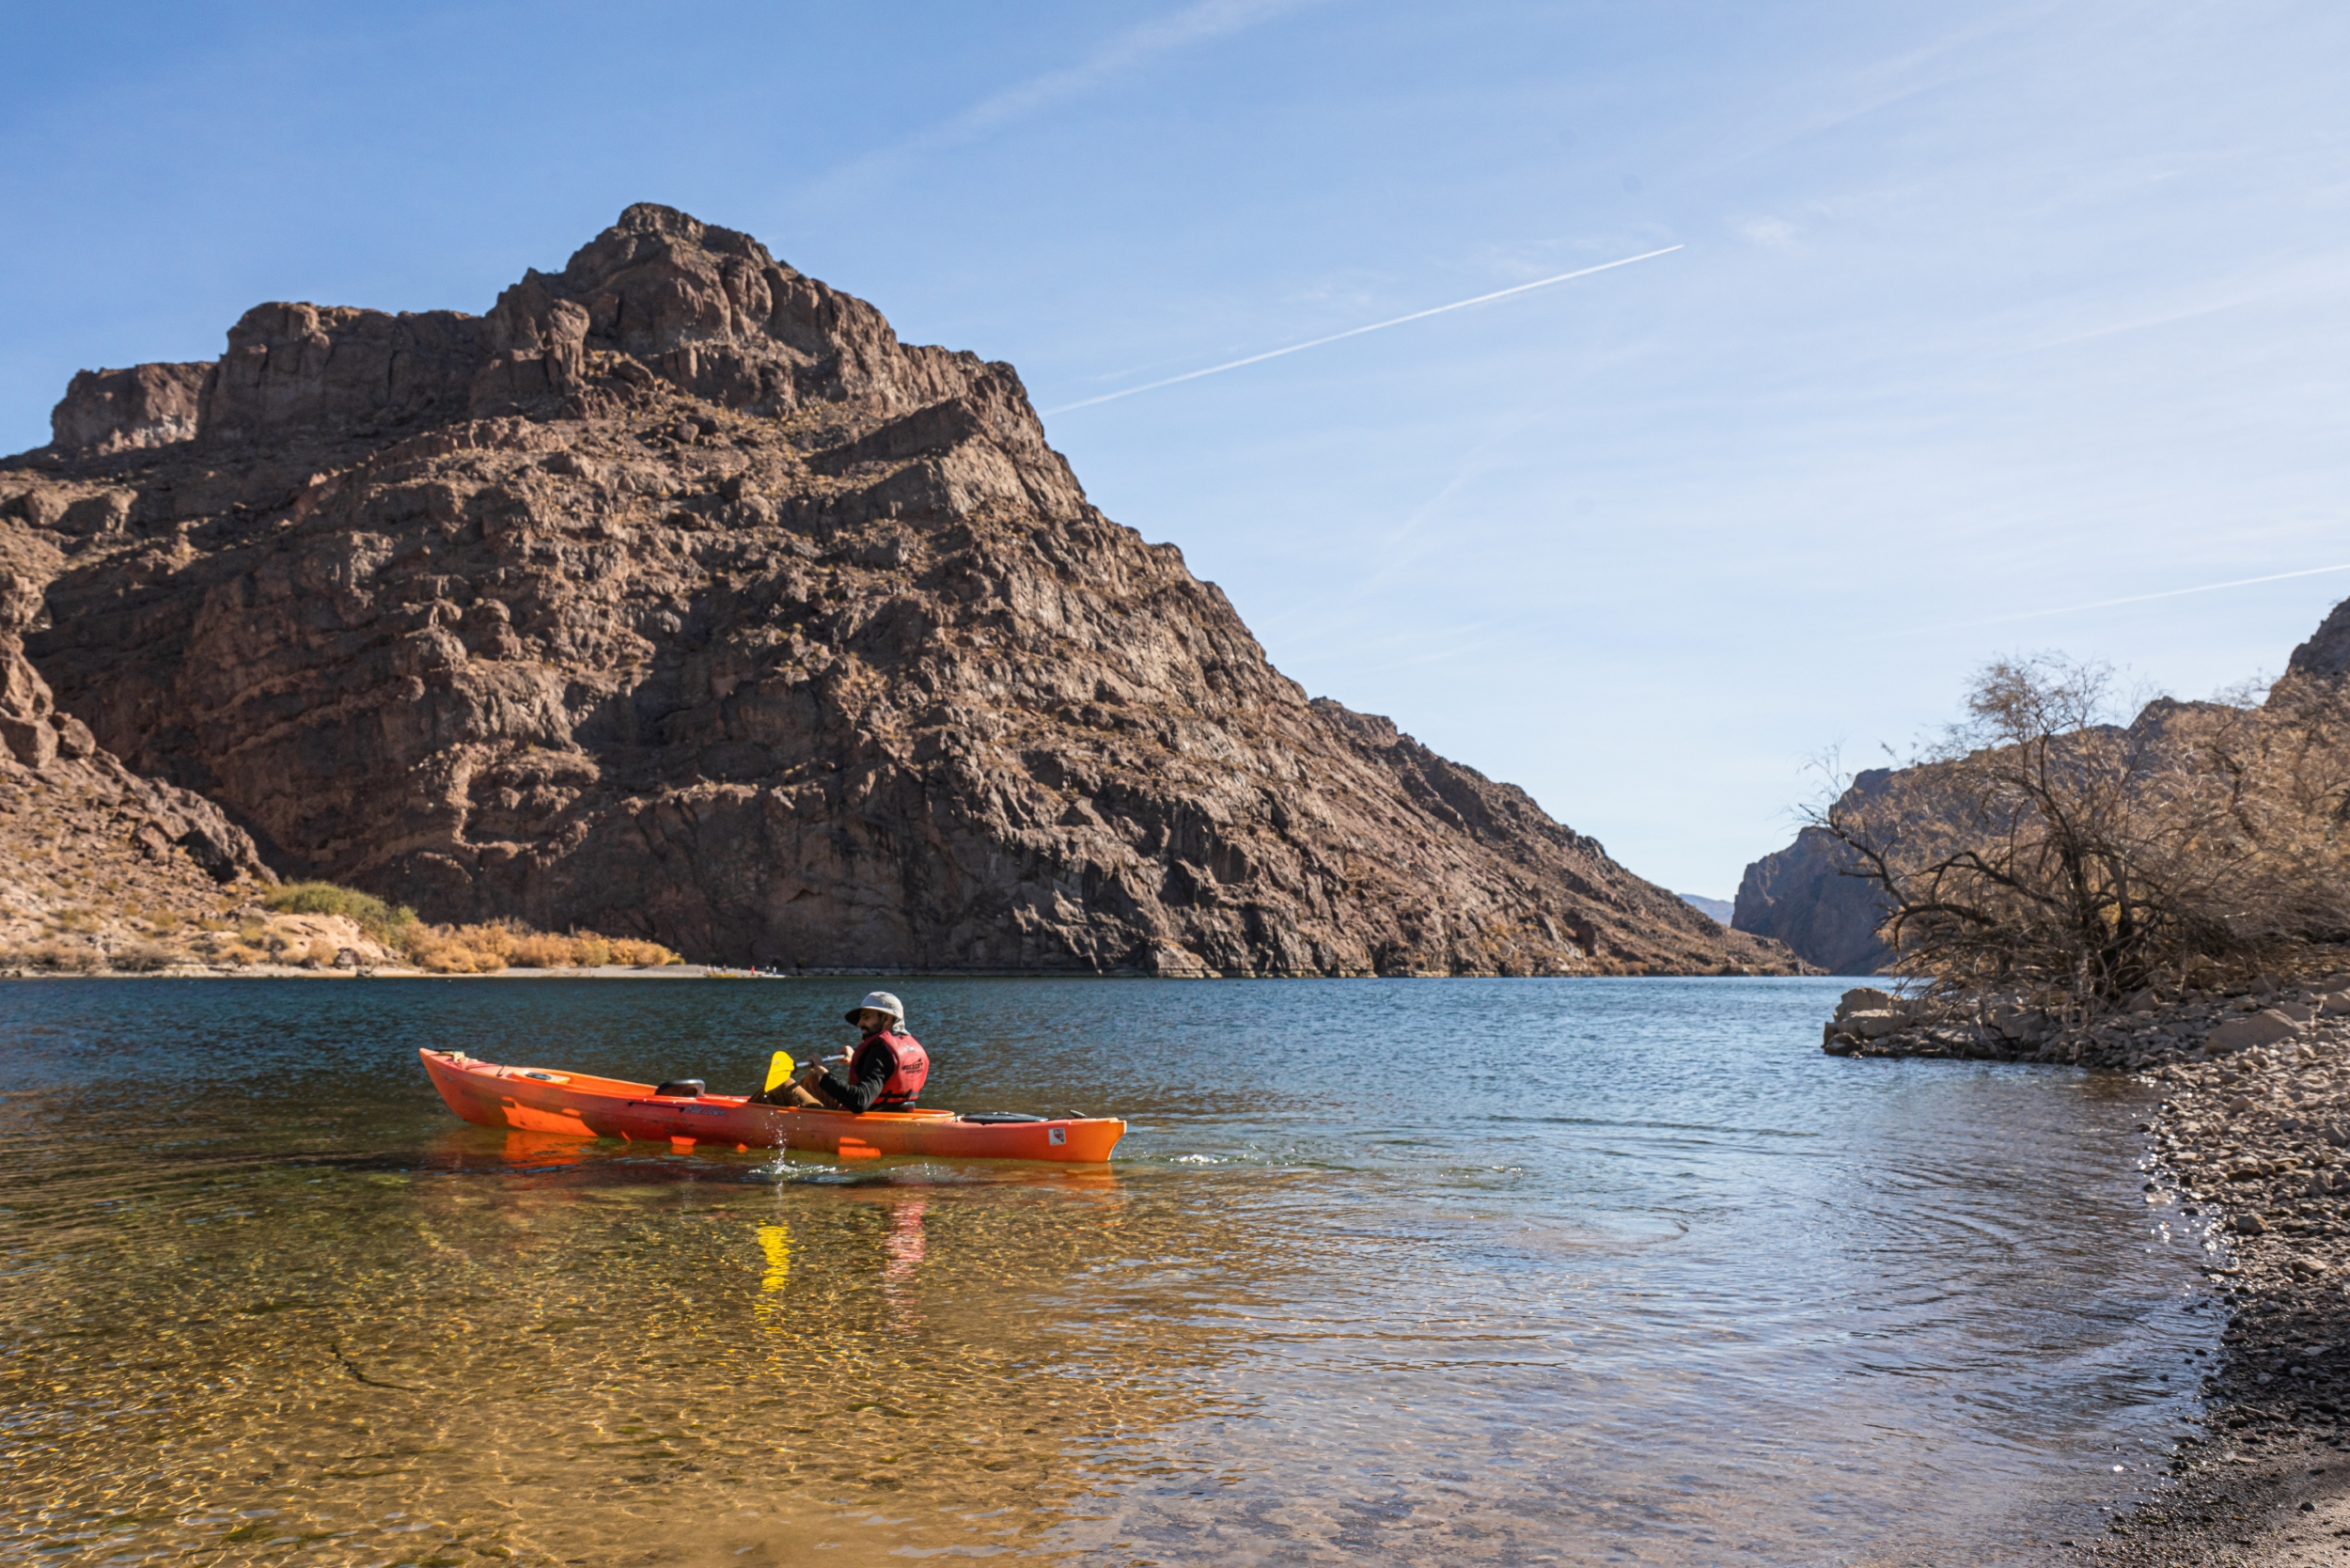 Best self-guided trip to Emerald Cove kayak 4